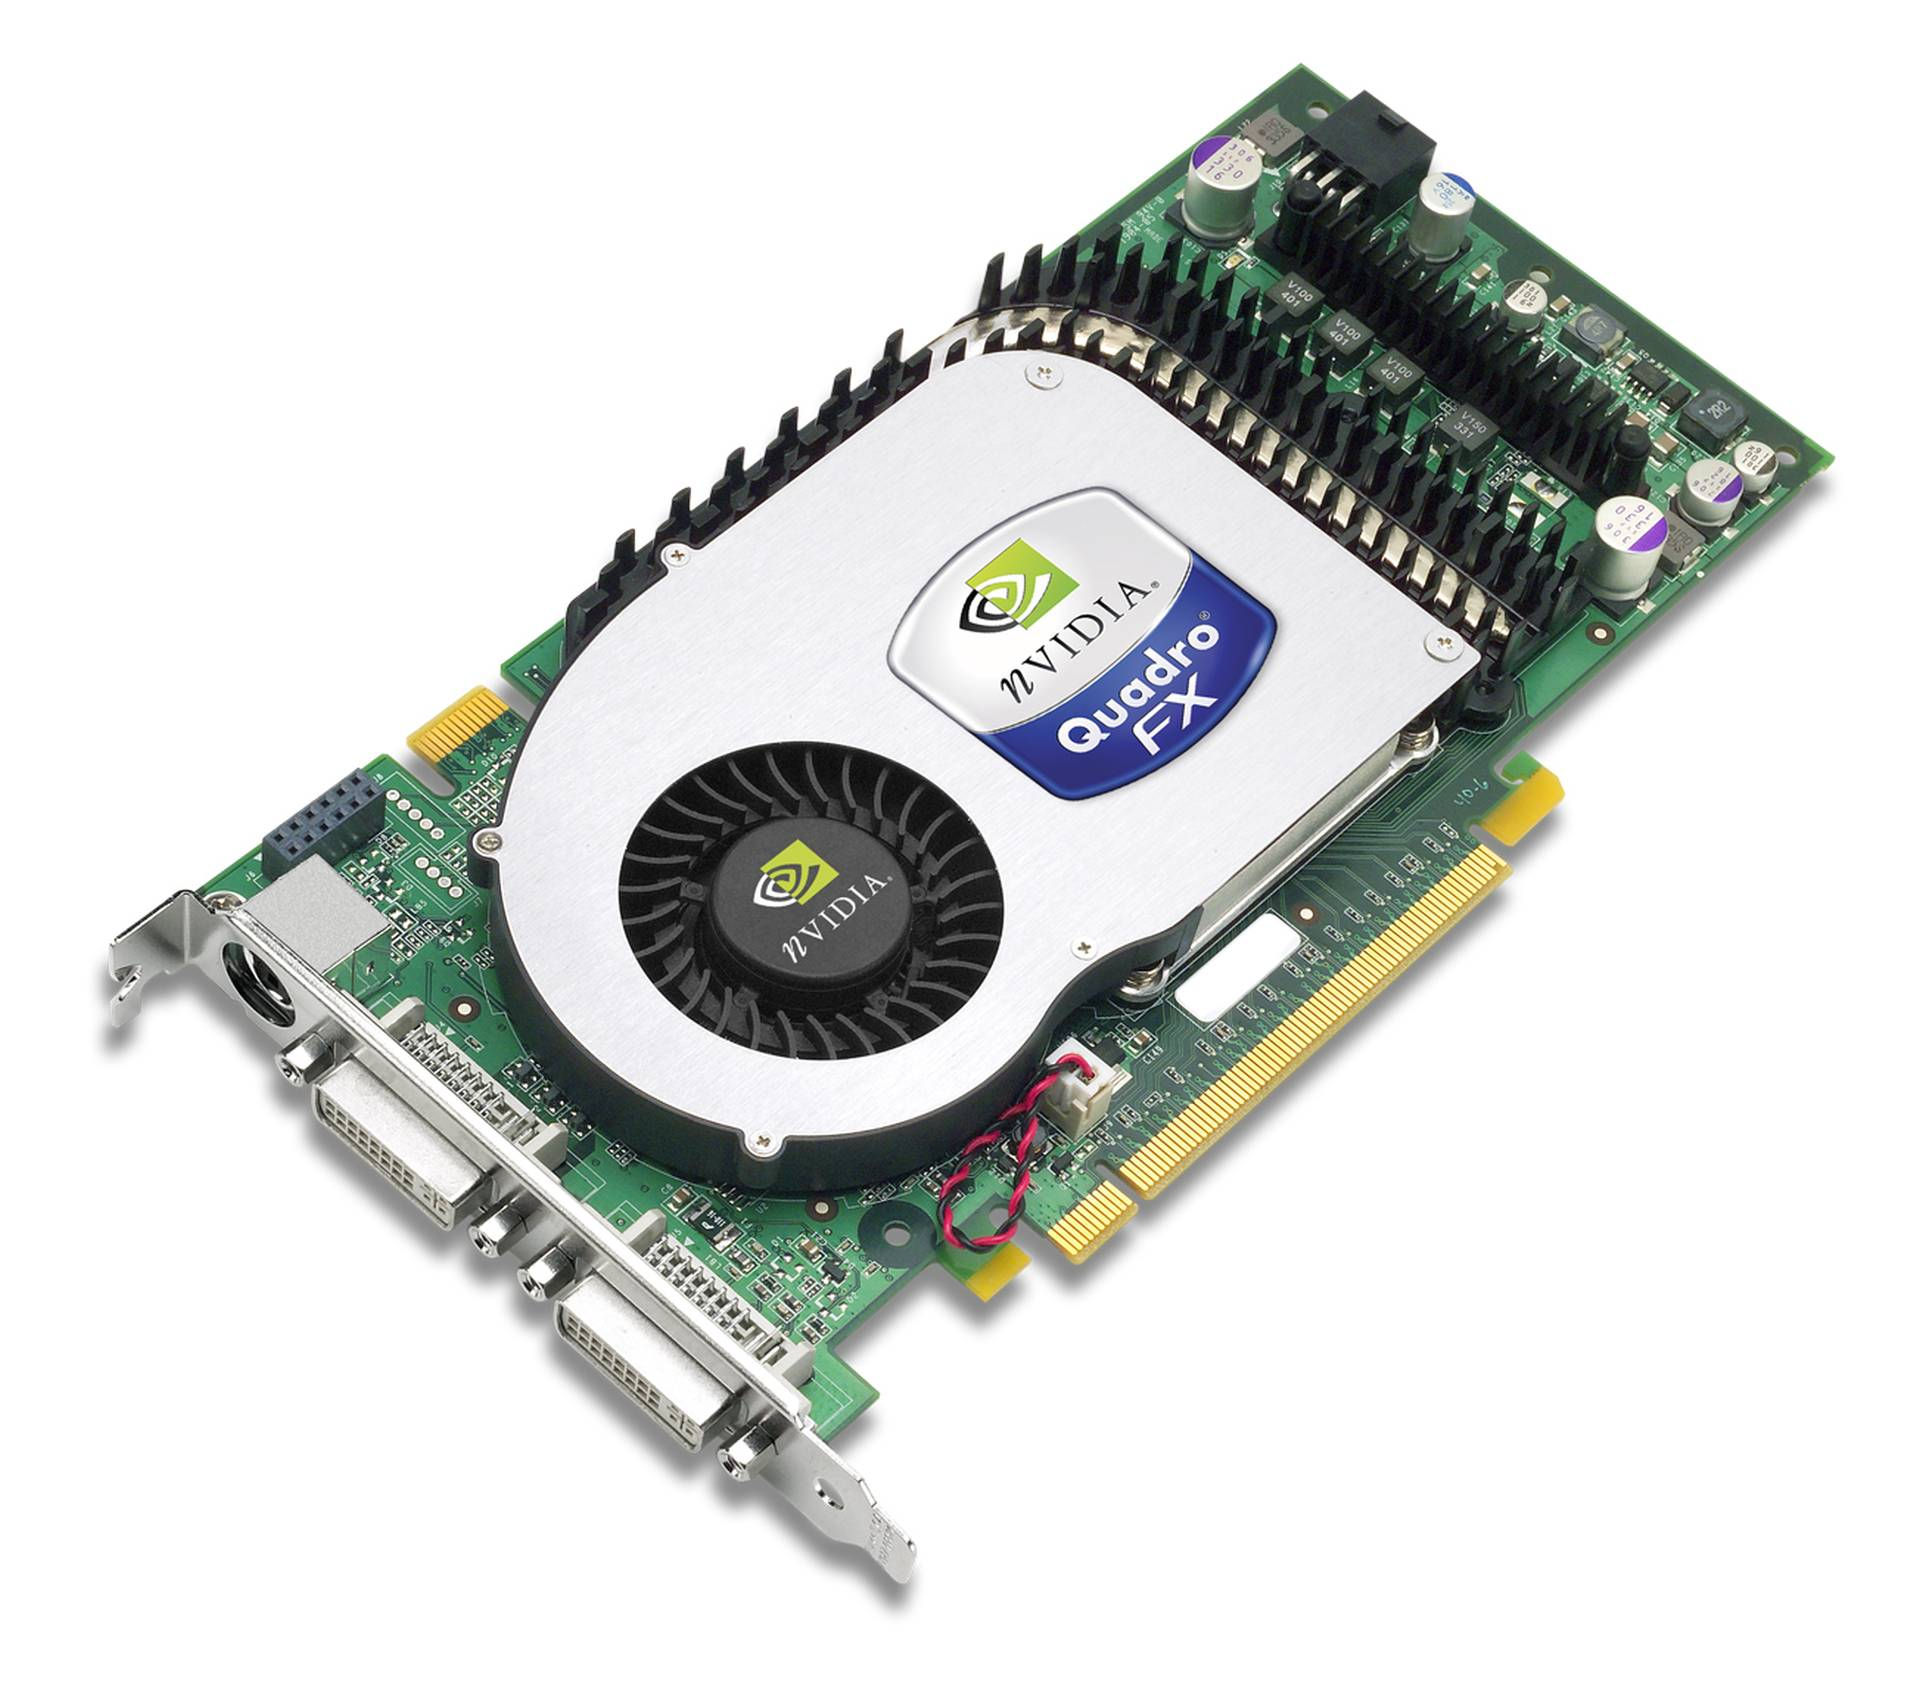 NVIDIA FX3400 Quadro FX 3400 256MB 256-bit GDDR3 PCI Express x16 Workstation Video Card